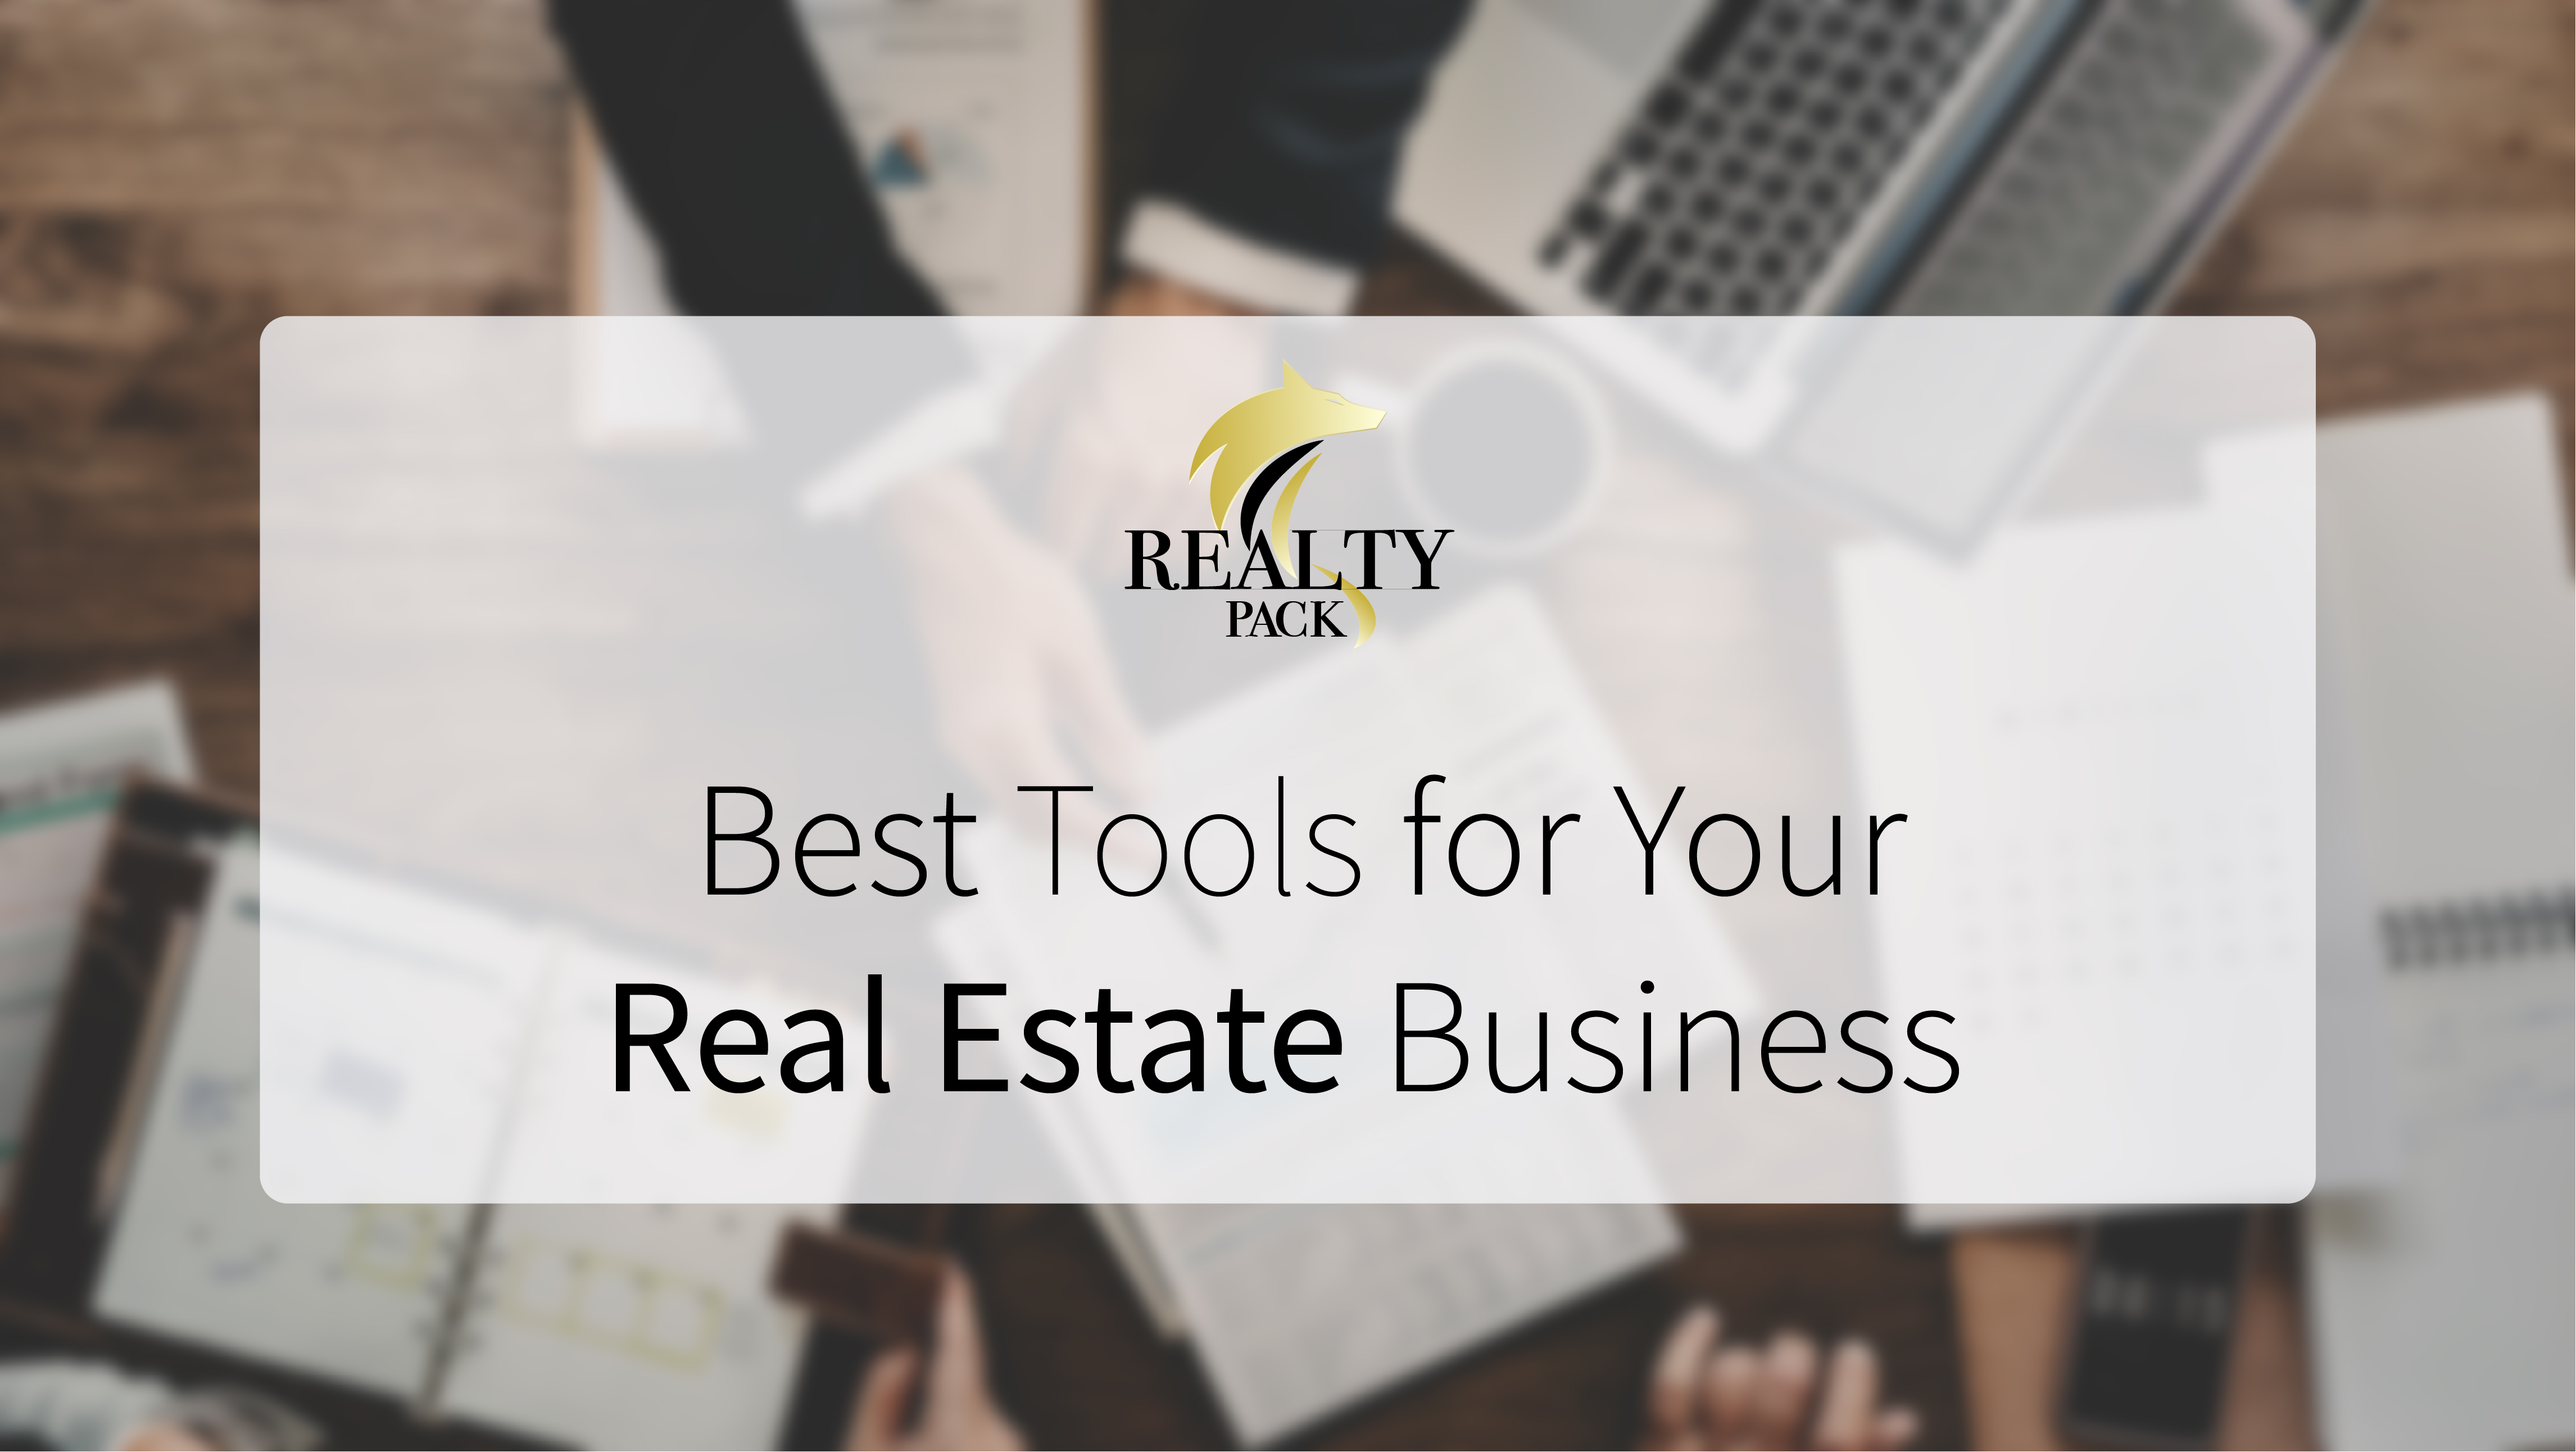 Tools for Your Real Estate business